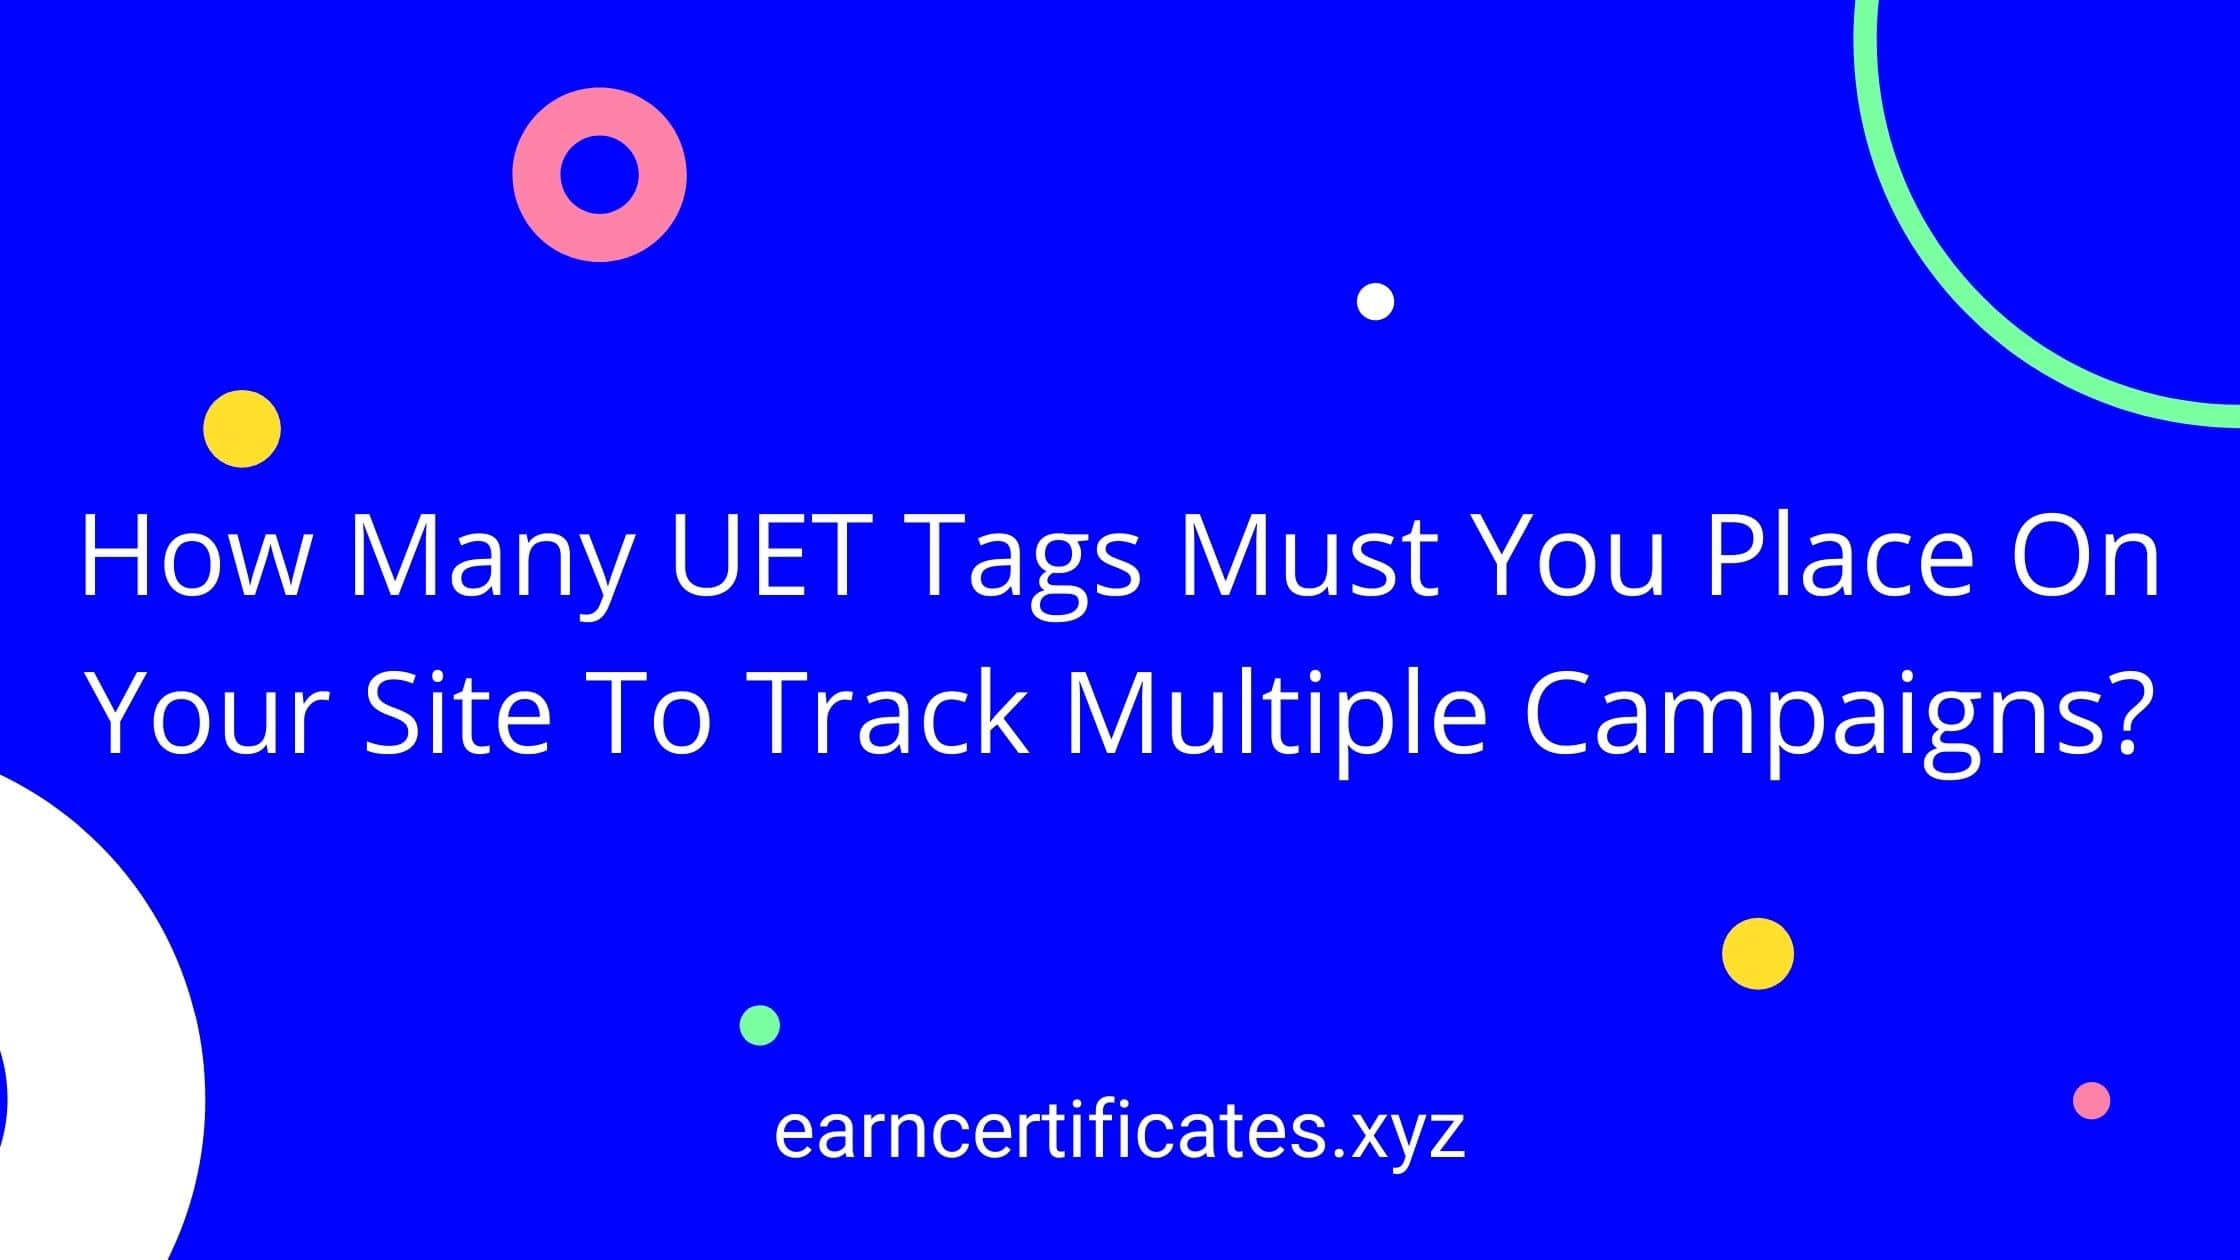 How Many UET Tags Must You Place On Your Site To Track Multiple Campaigns?